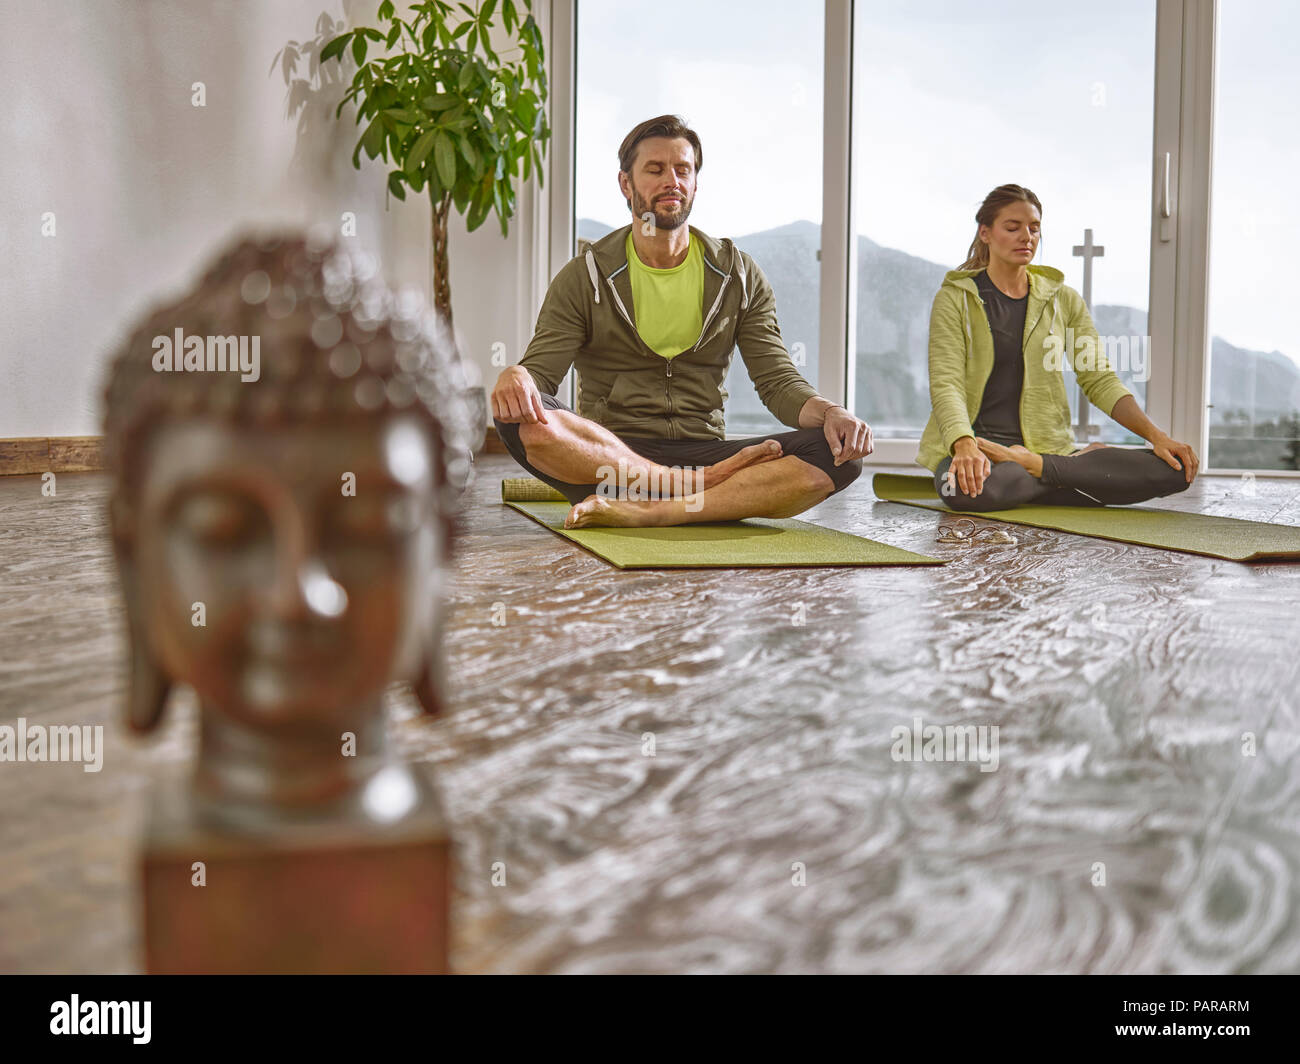 Couple practicing yoga in a room with panorama window - Stock Image